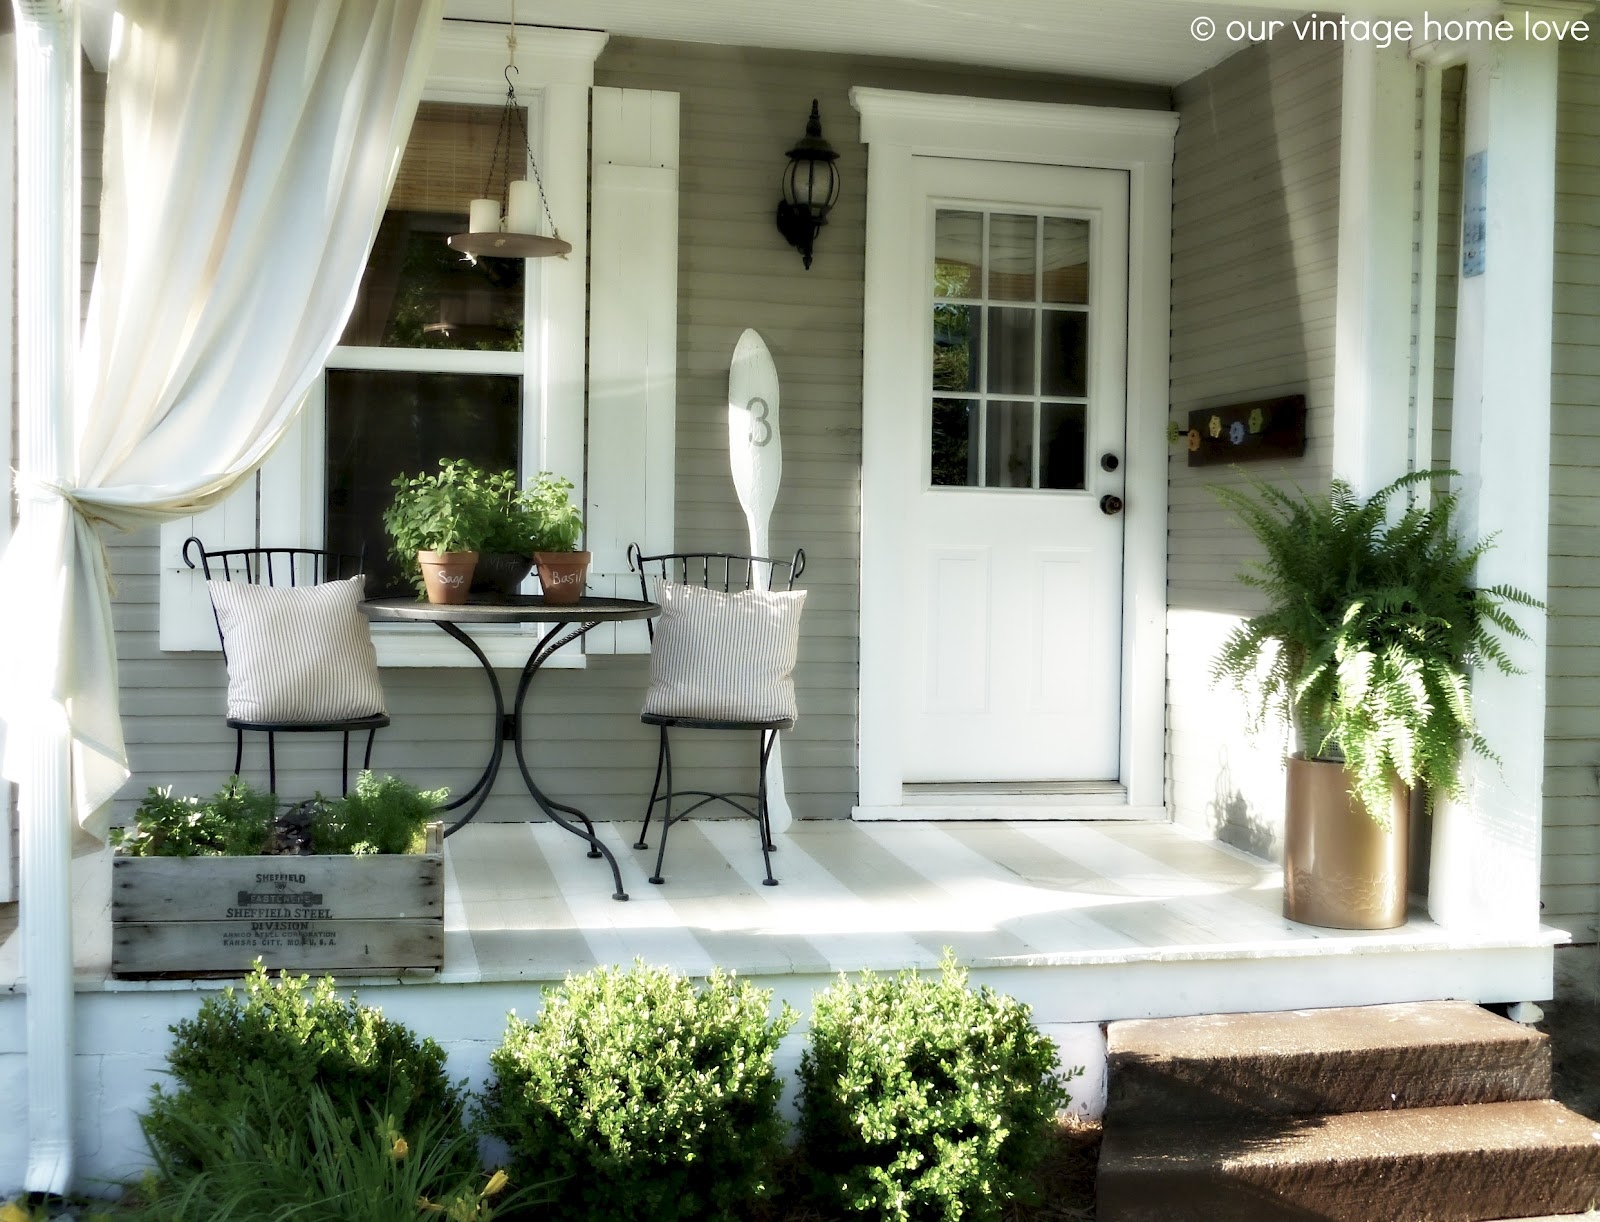 Vintage home love our home for Front door patio ideas